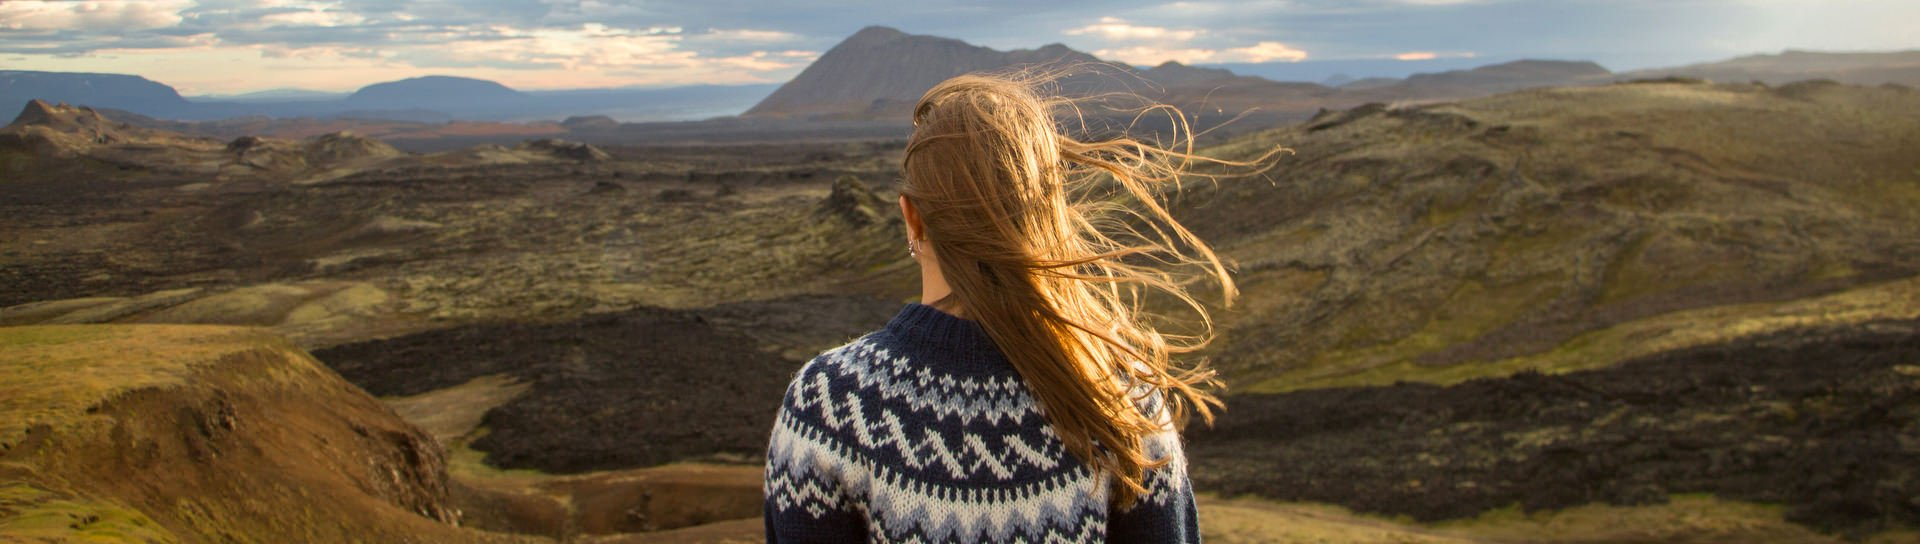 Travel to Iceland to experience some of the most scenic landscapes in Scandinavia